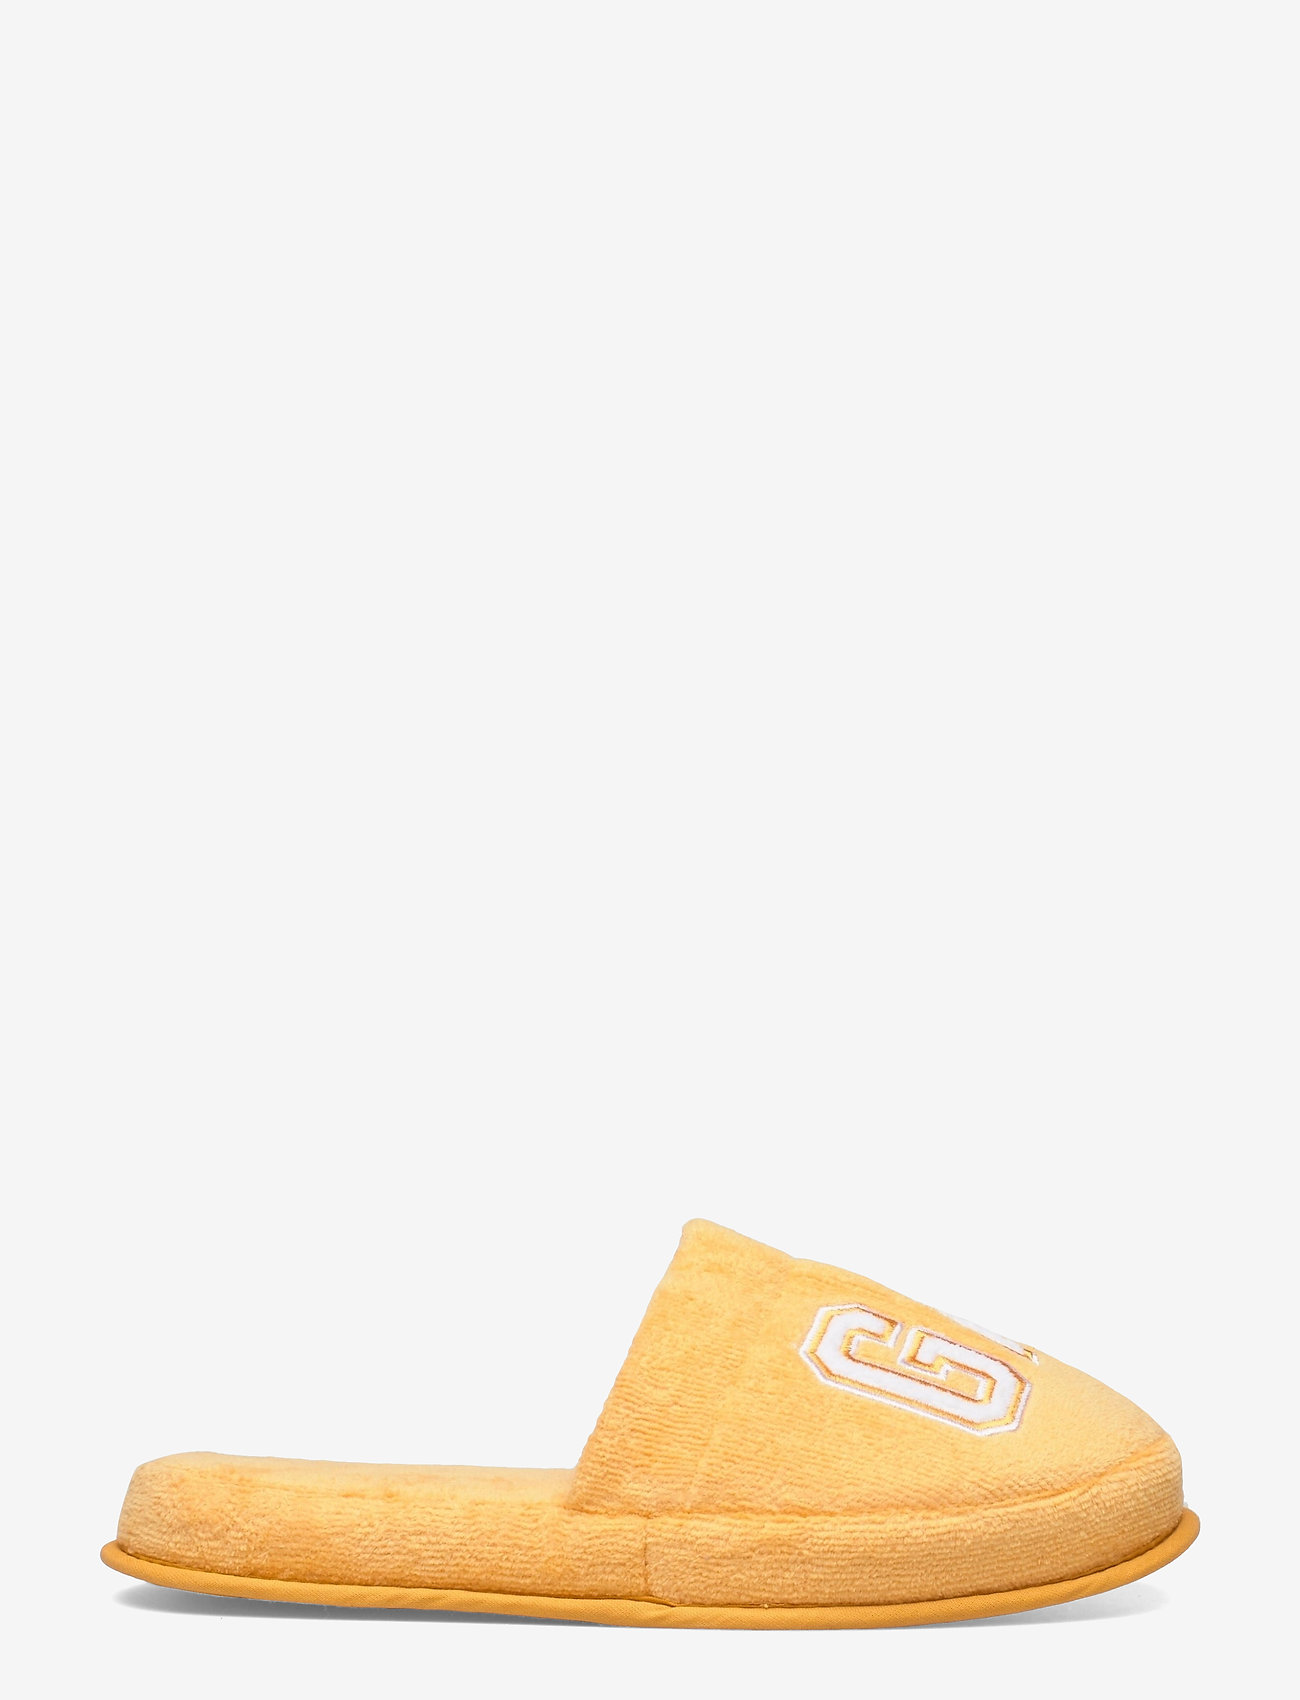 GANT - VACAY SLIPPERS - odzież - mandarin orange - 0